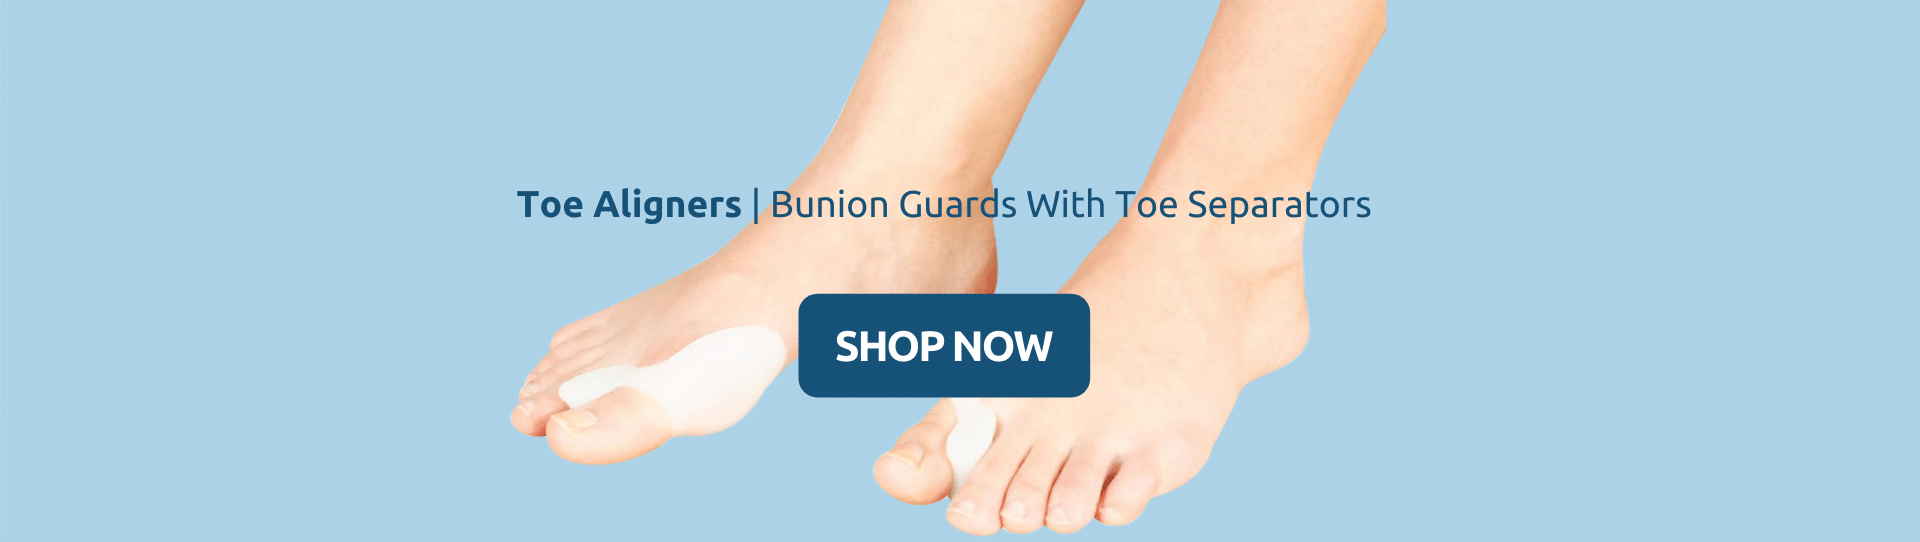 Buy Toe Aligners Bunion Guards With Toe Separators